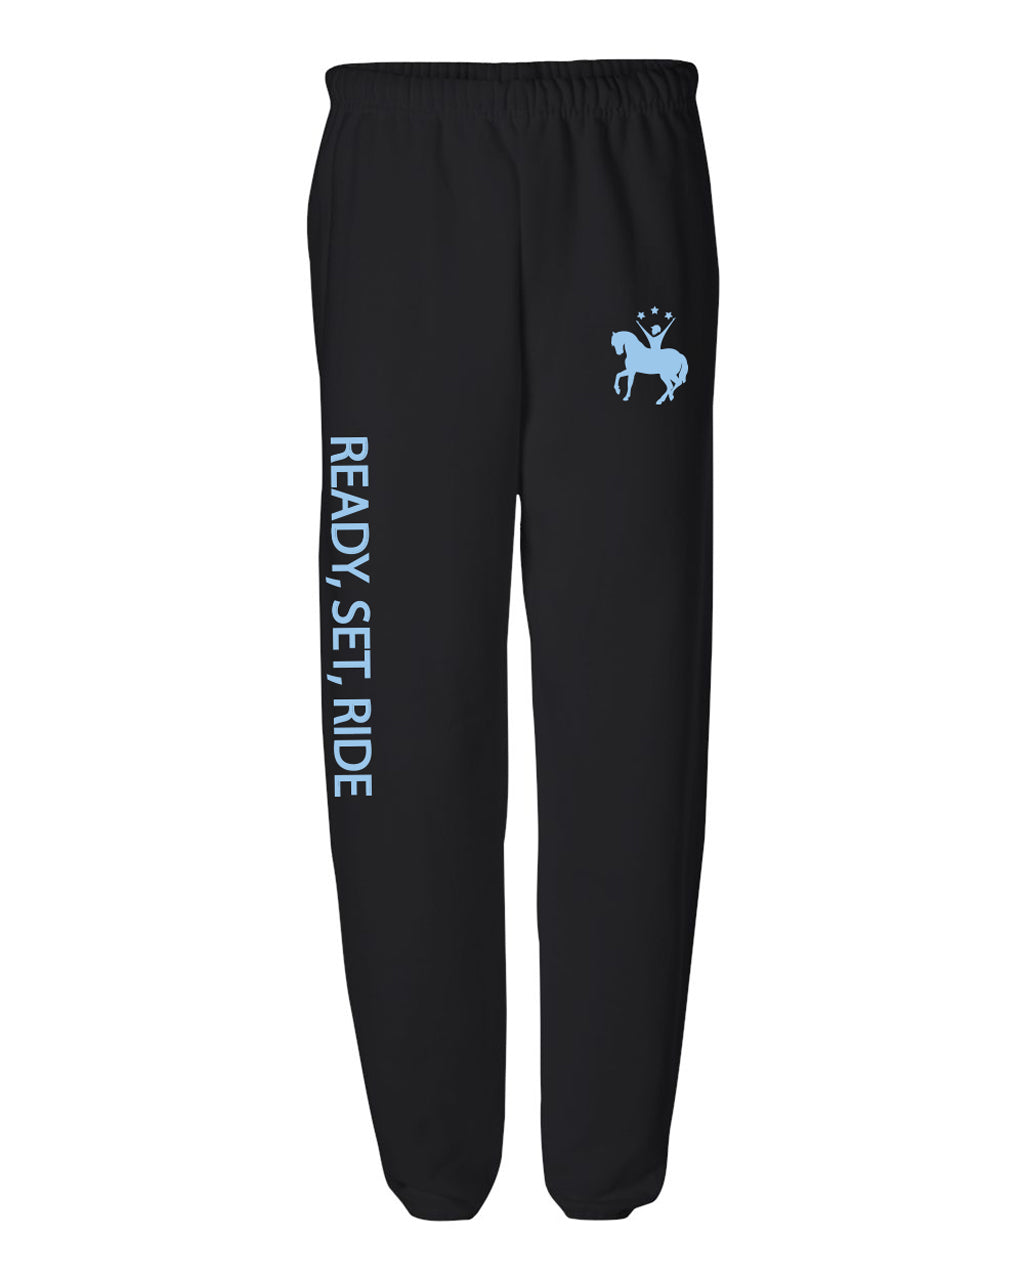 Team Ready Set Ride Sweatpants